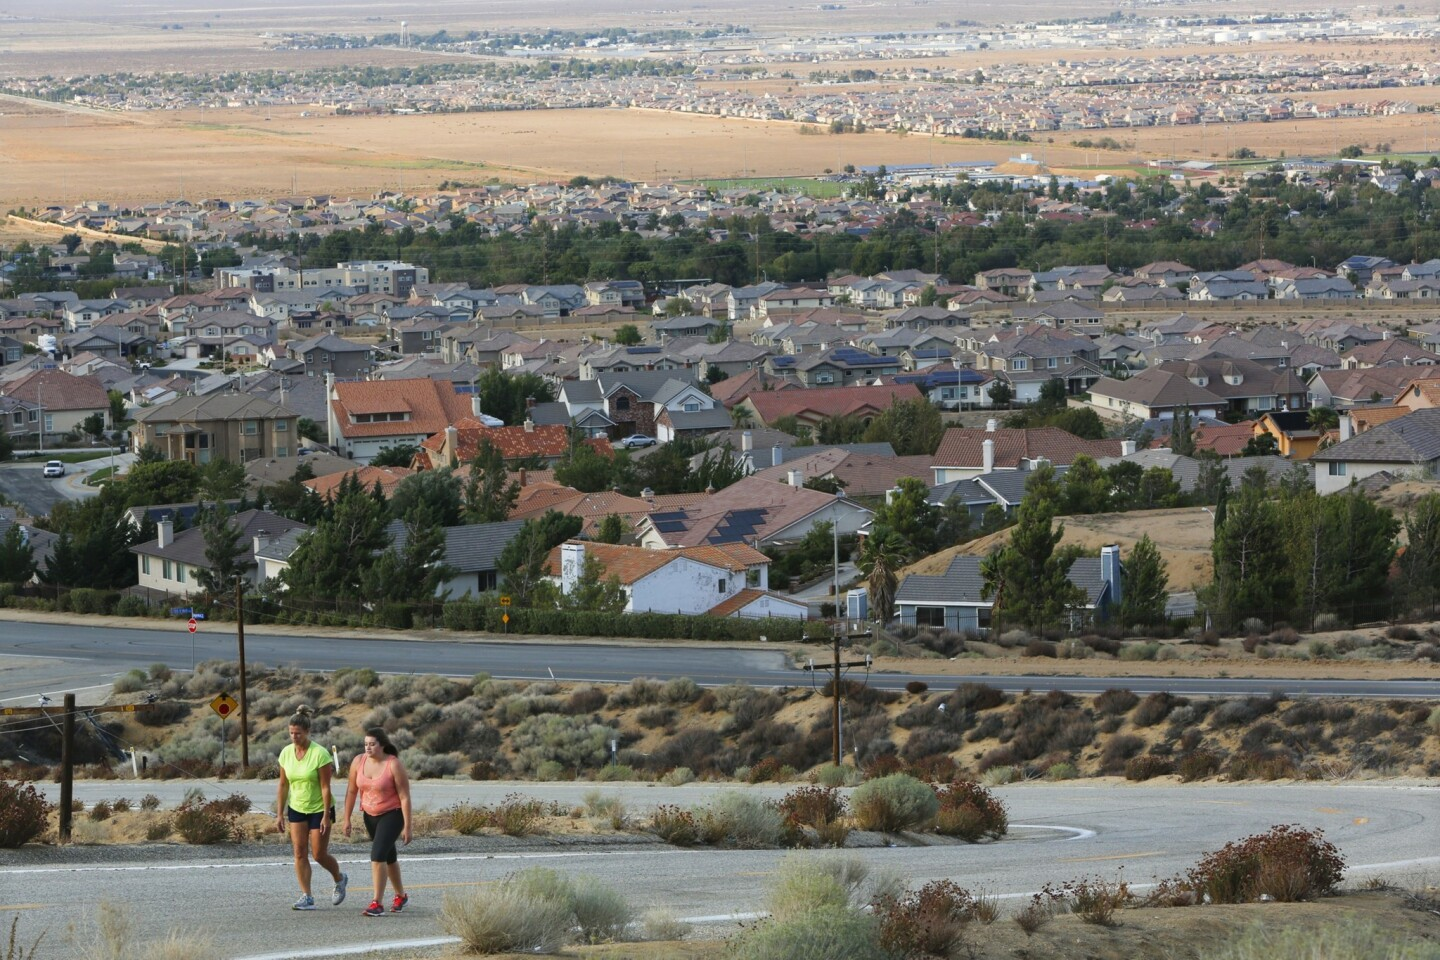 Penny Munz, left, walks with her daughter Stephanie in Palmdale; Lancaster is in the distance. The rift between the two towns has baffled residents, city employees and business interests.